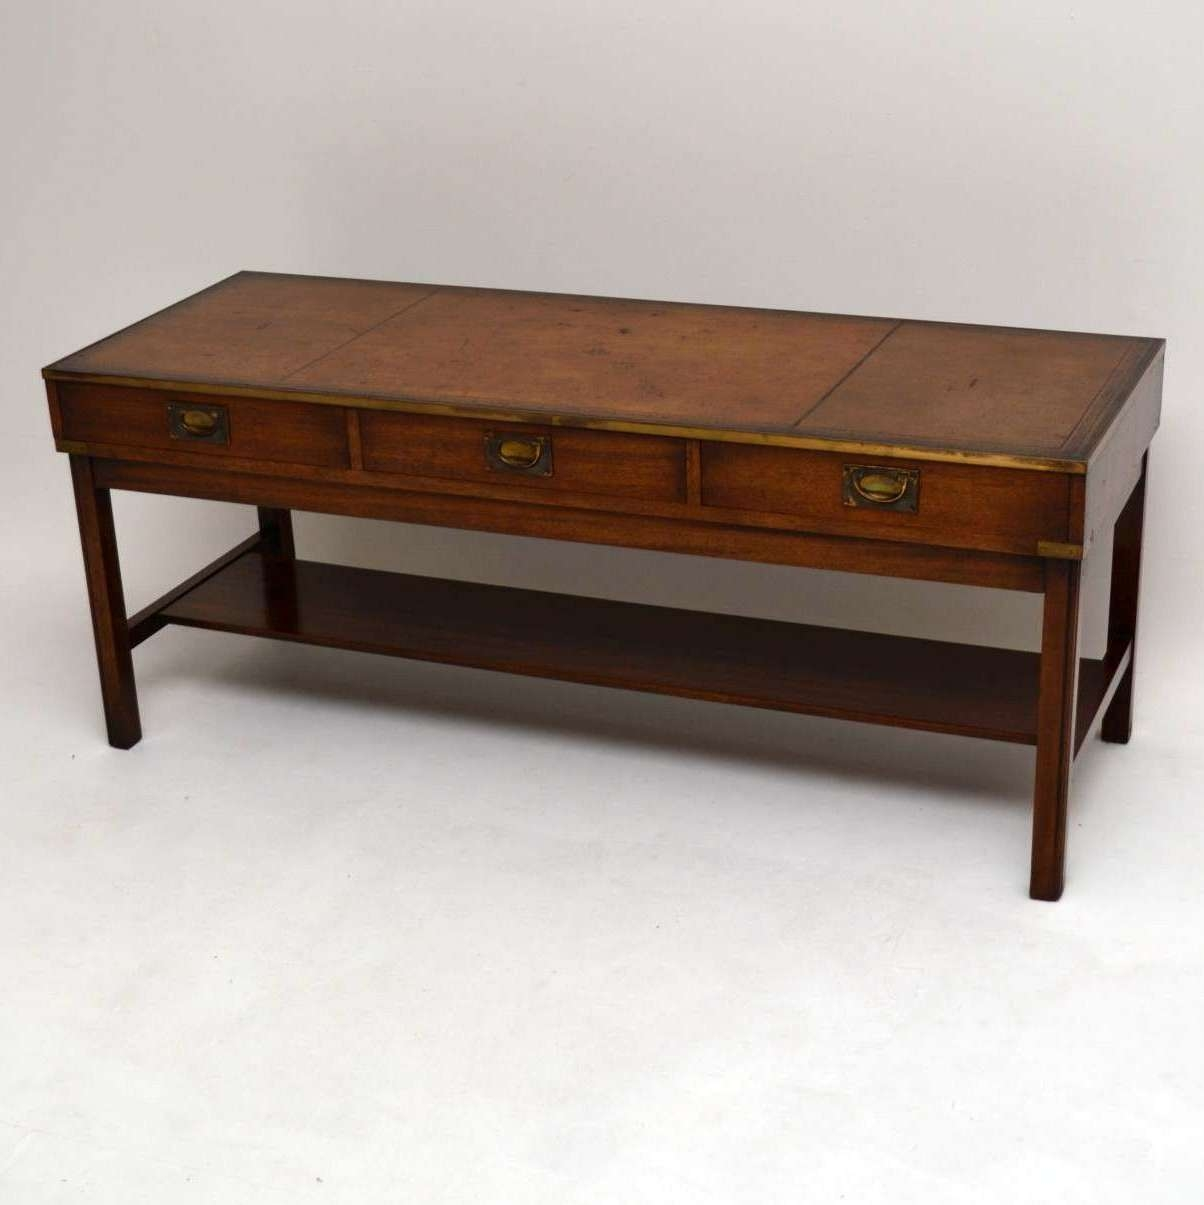 Famous Campaign Coffee Tables For Coffee Tables : Campaign Coffee Table Low Folding Sarreid Ltd (View 7 of 20)